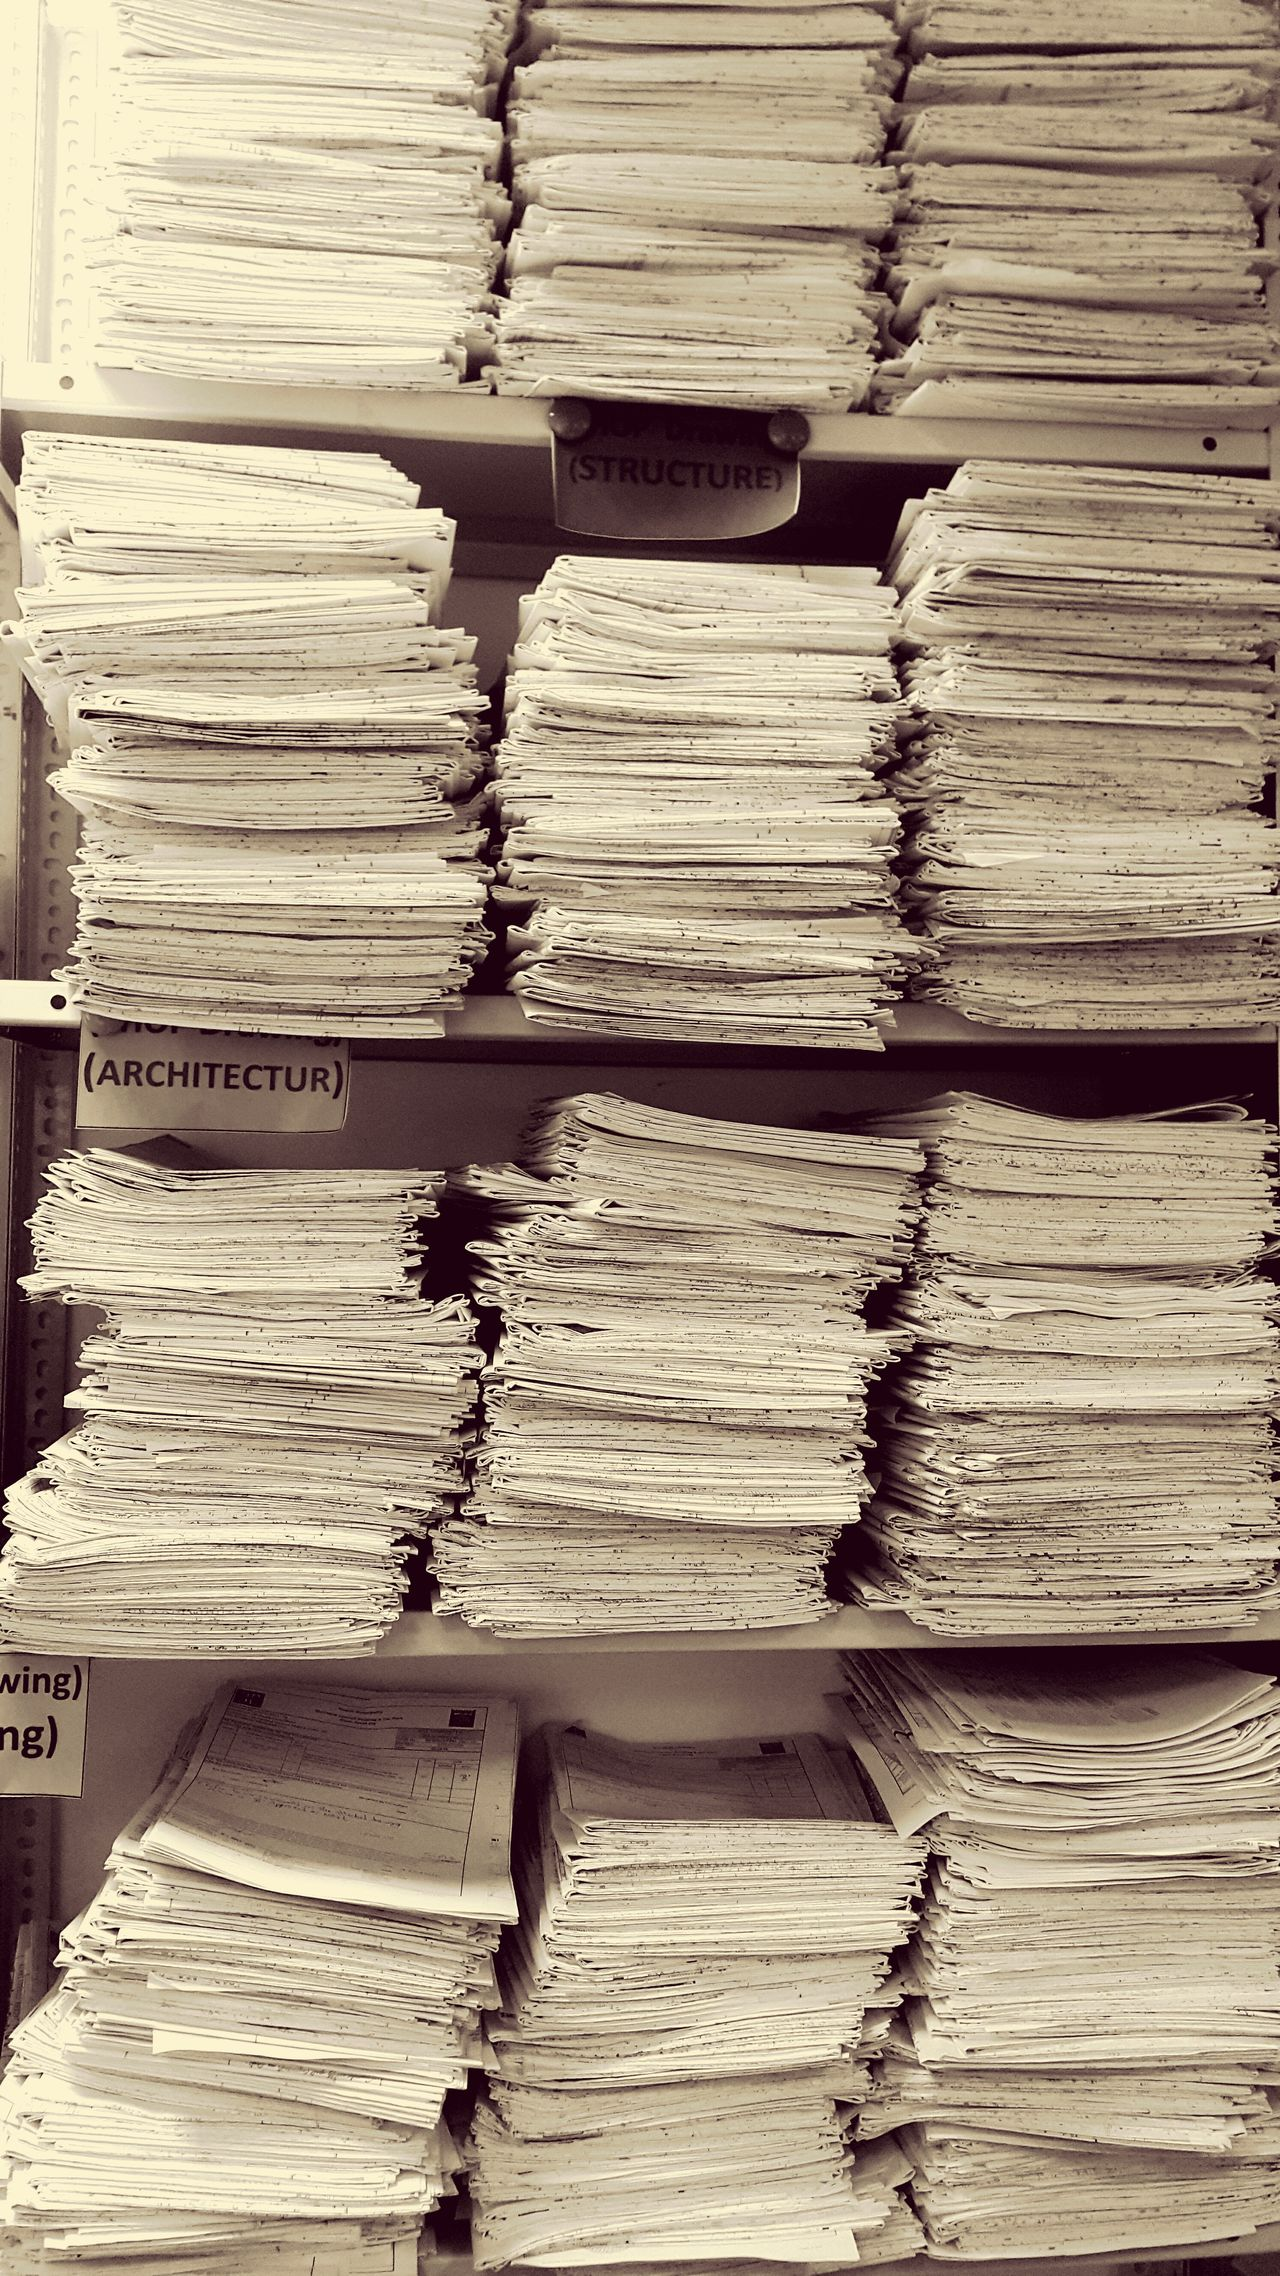 Paperwork No People Business Full Frame Backgrounds Paper Close-up Office Textured  Filing Stack Filing Cabinet